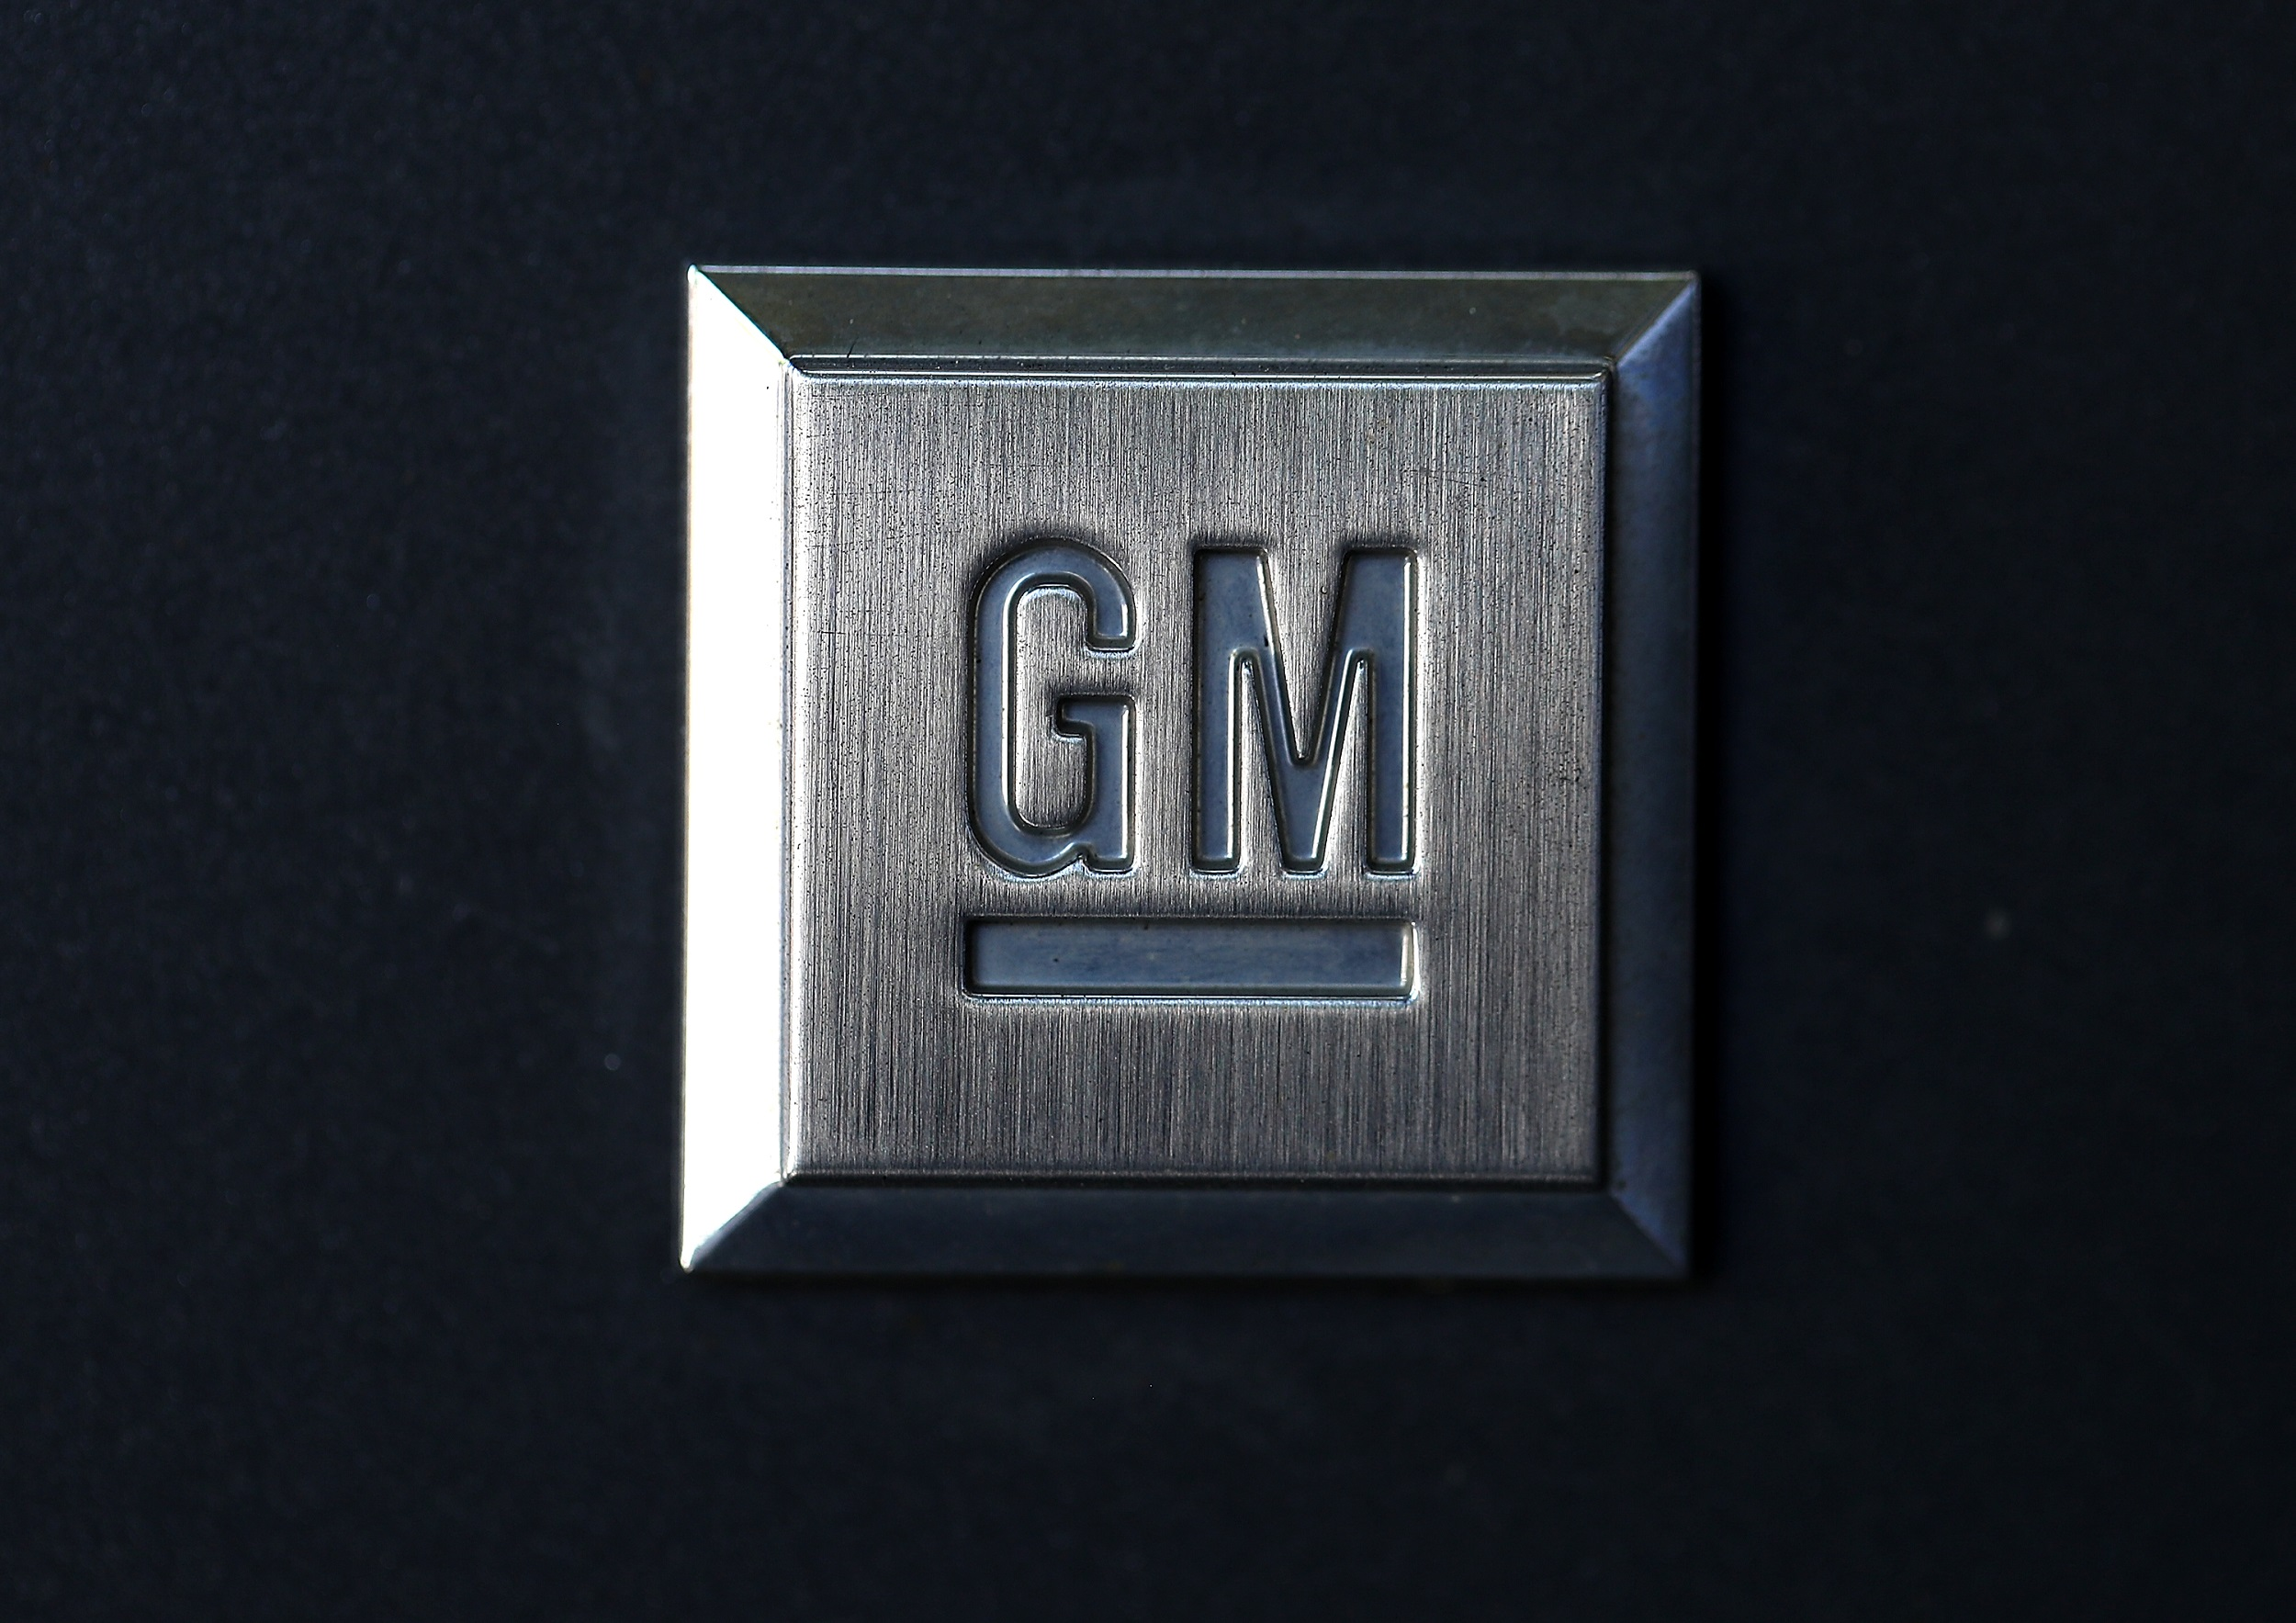 GM said to be readying 4,000 involuntary job cuts next week